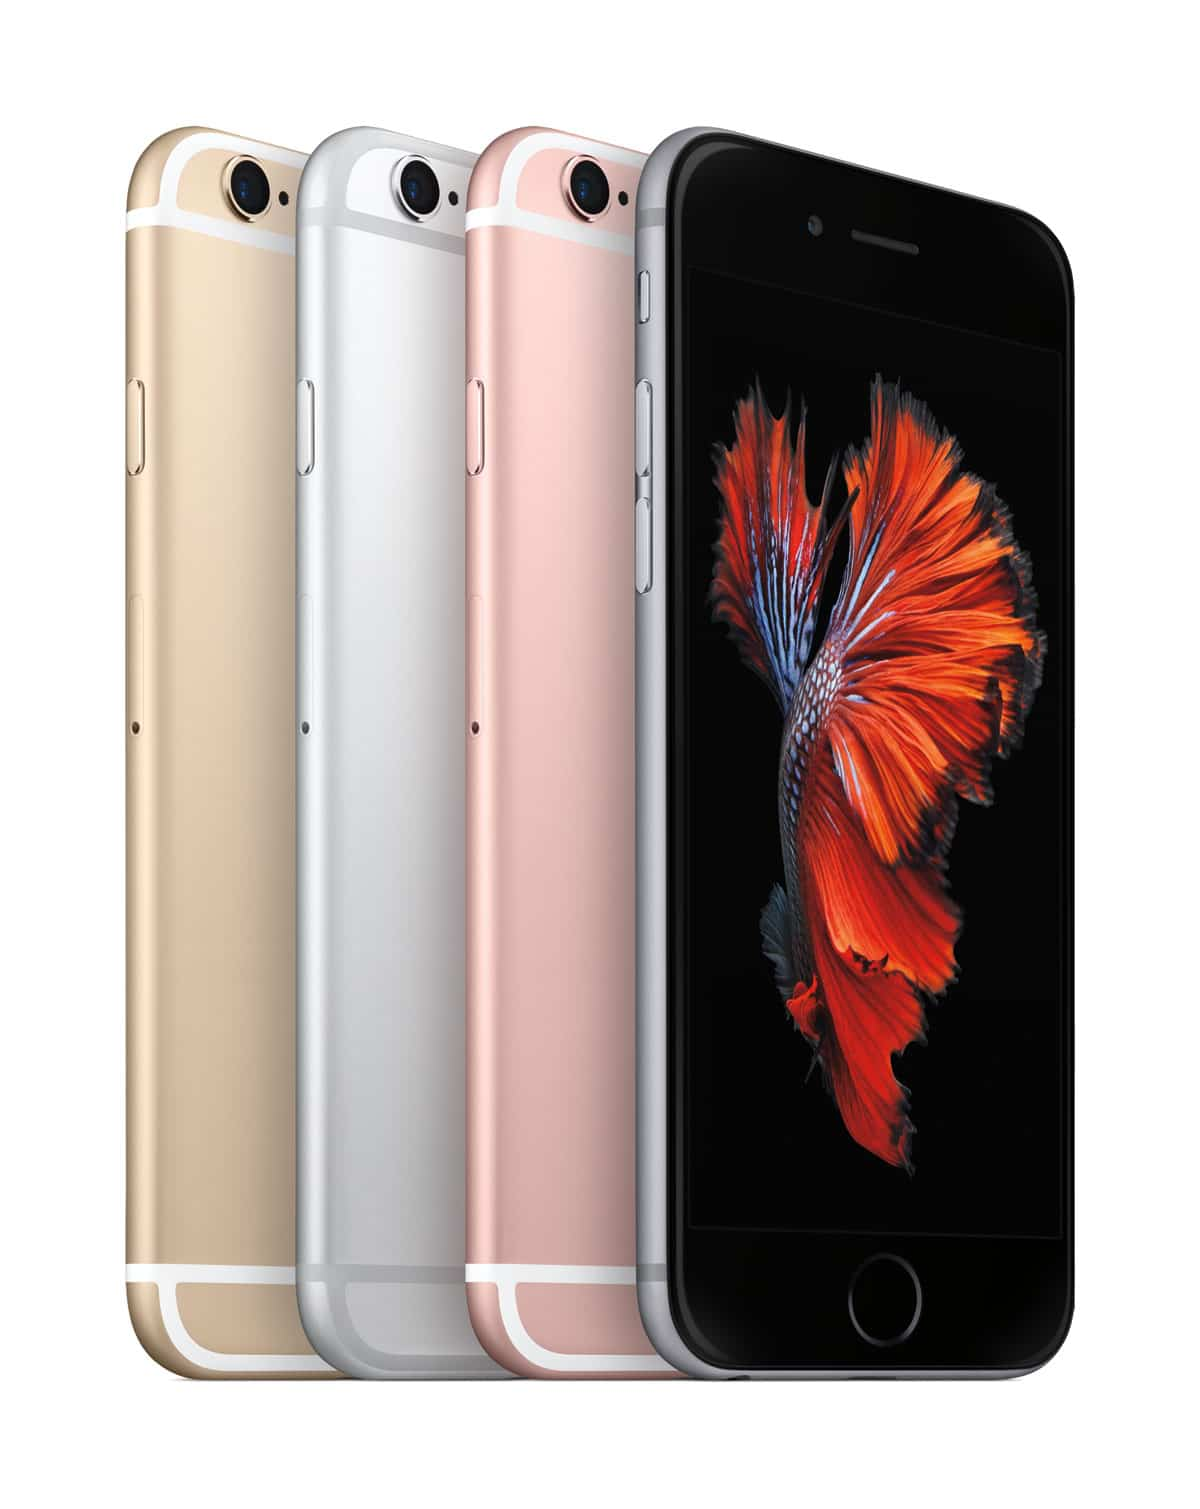 colores oro, plata y rosa del iphone 6s